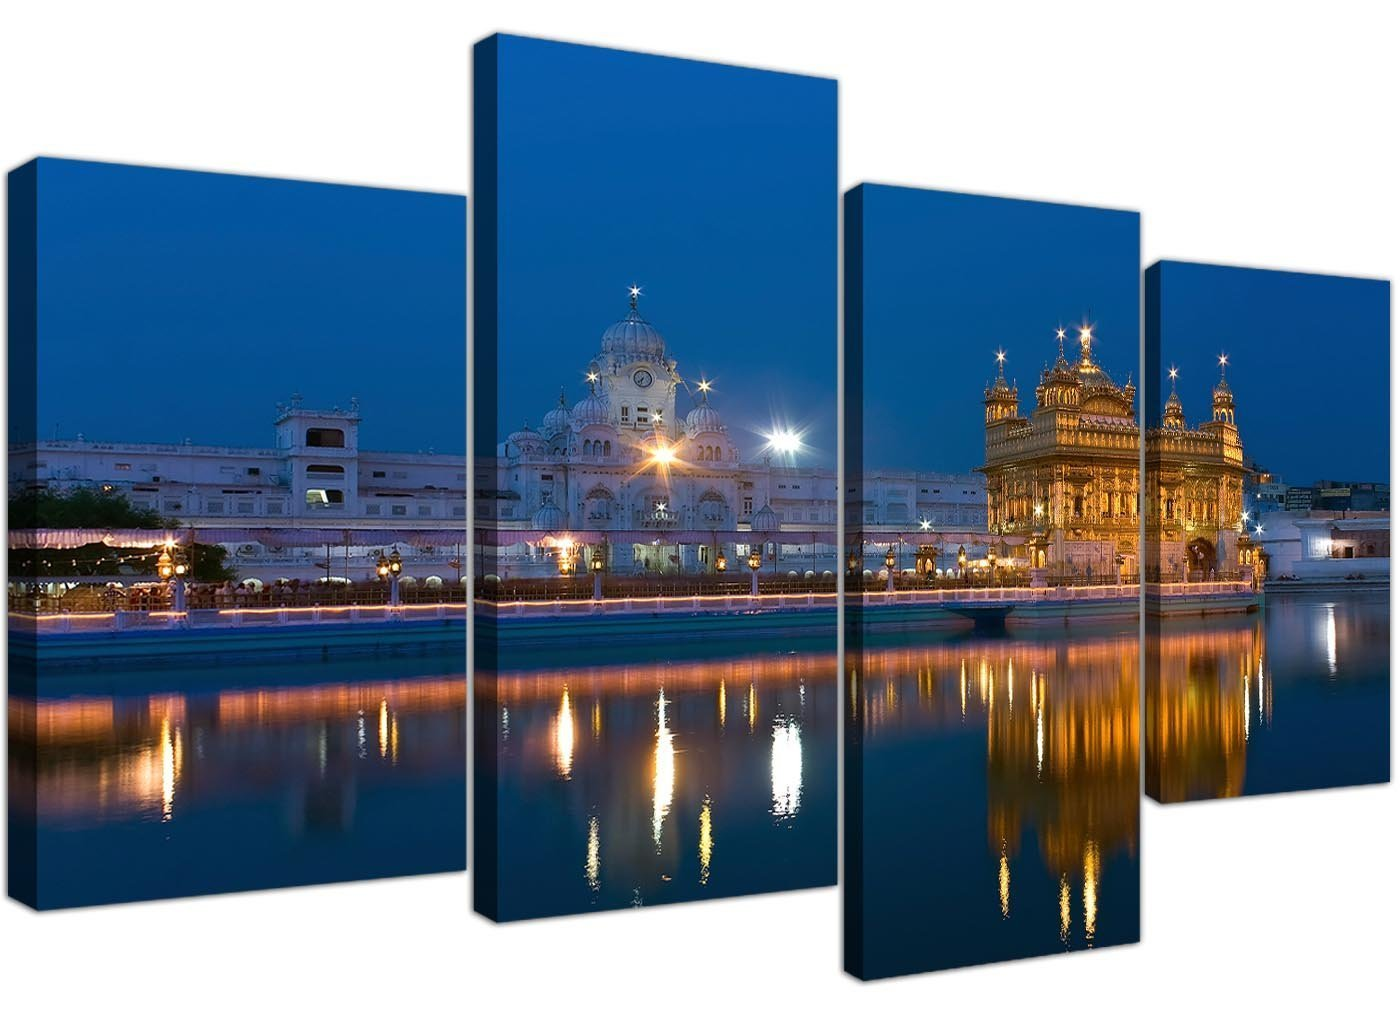 Perfect Amazon.com: Large Sikh Canvas Wall Art Pictures Of The Golden Temple At  Amritsar   Set Of 4   Multi Panel Artwork   Modern Split Canvases   XL    130cm Wide: ...